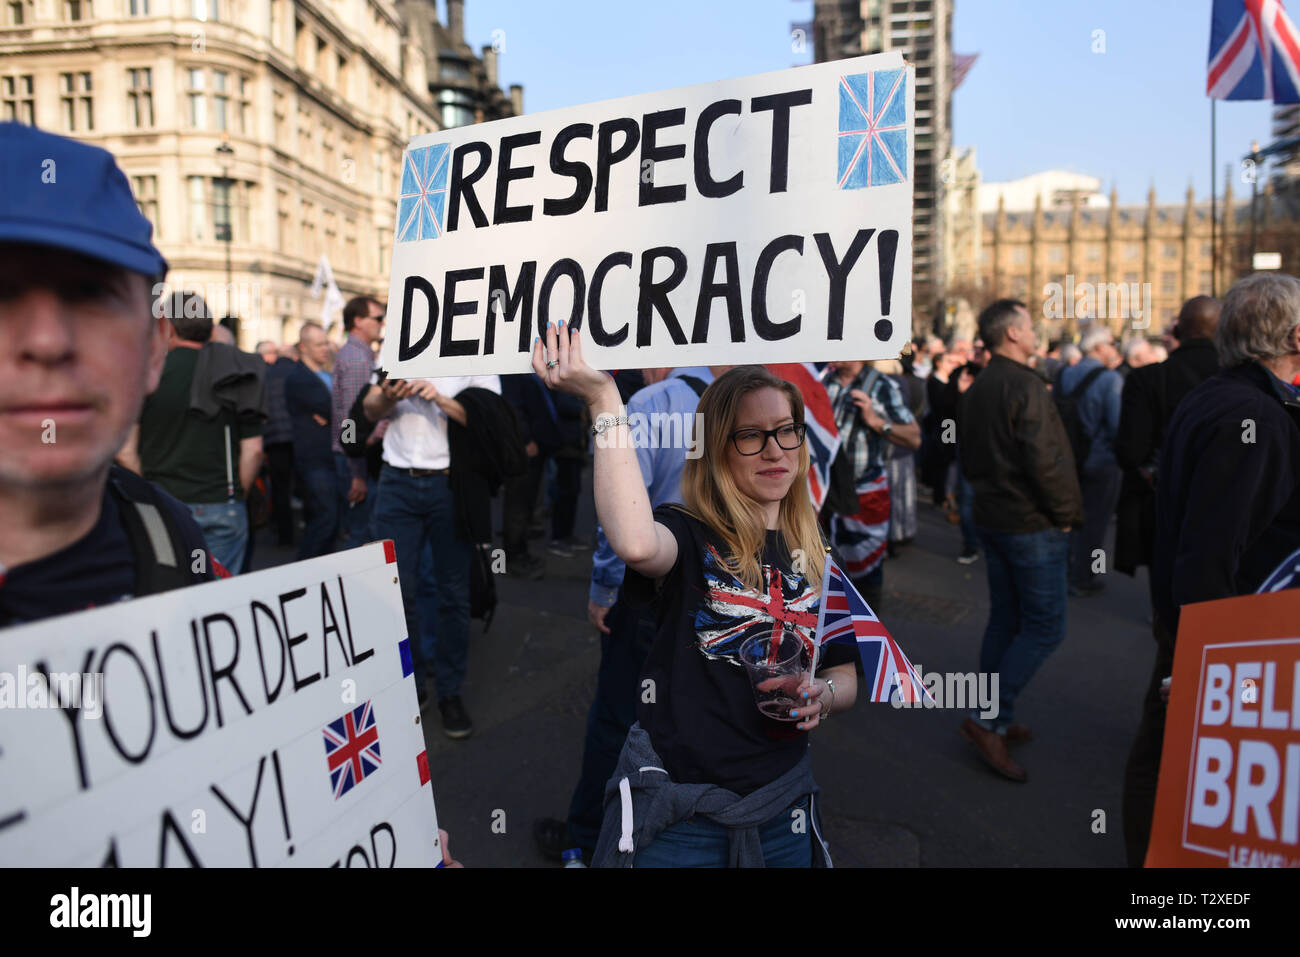 "*** FRANCE OUT / NO SALES TO FRENCH MEDIA *** March 29, 2019 - London, United Kingdom: Thousands of Brexit supporters rally outside the British parliament to protest against ""Brexit betrayal"" on the day the UK was originally due to leave the European Union. Stock Photo"